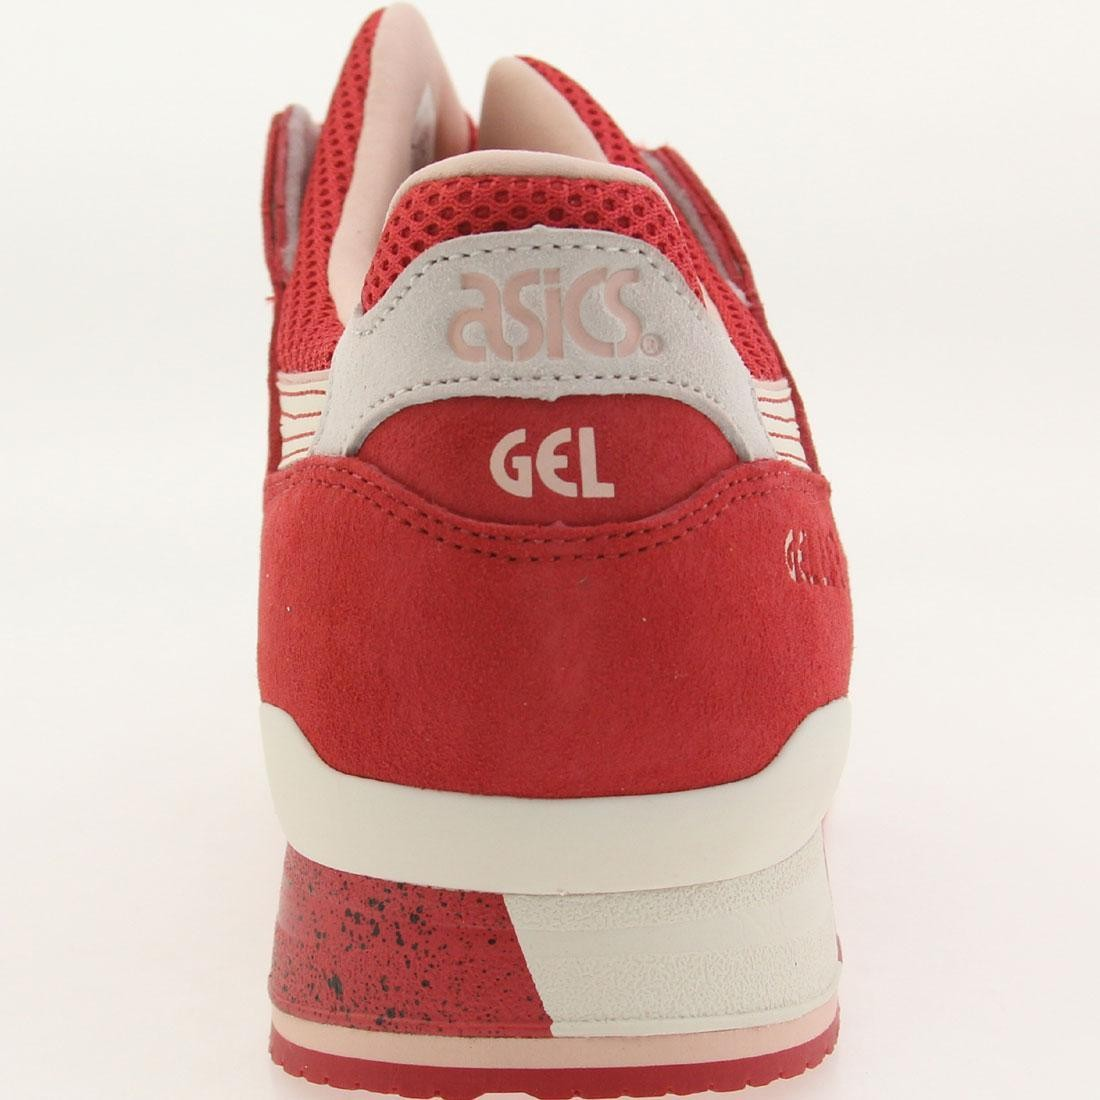 1e2312bbe7cd Asics Tiger Men Gel-Lyte III Valentines Day - Strawberries And Cream (red    cream)